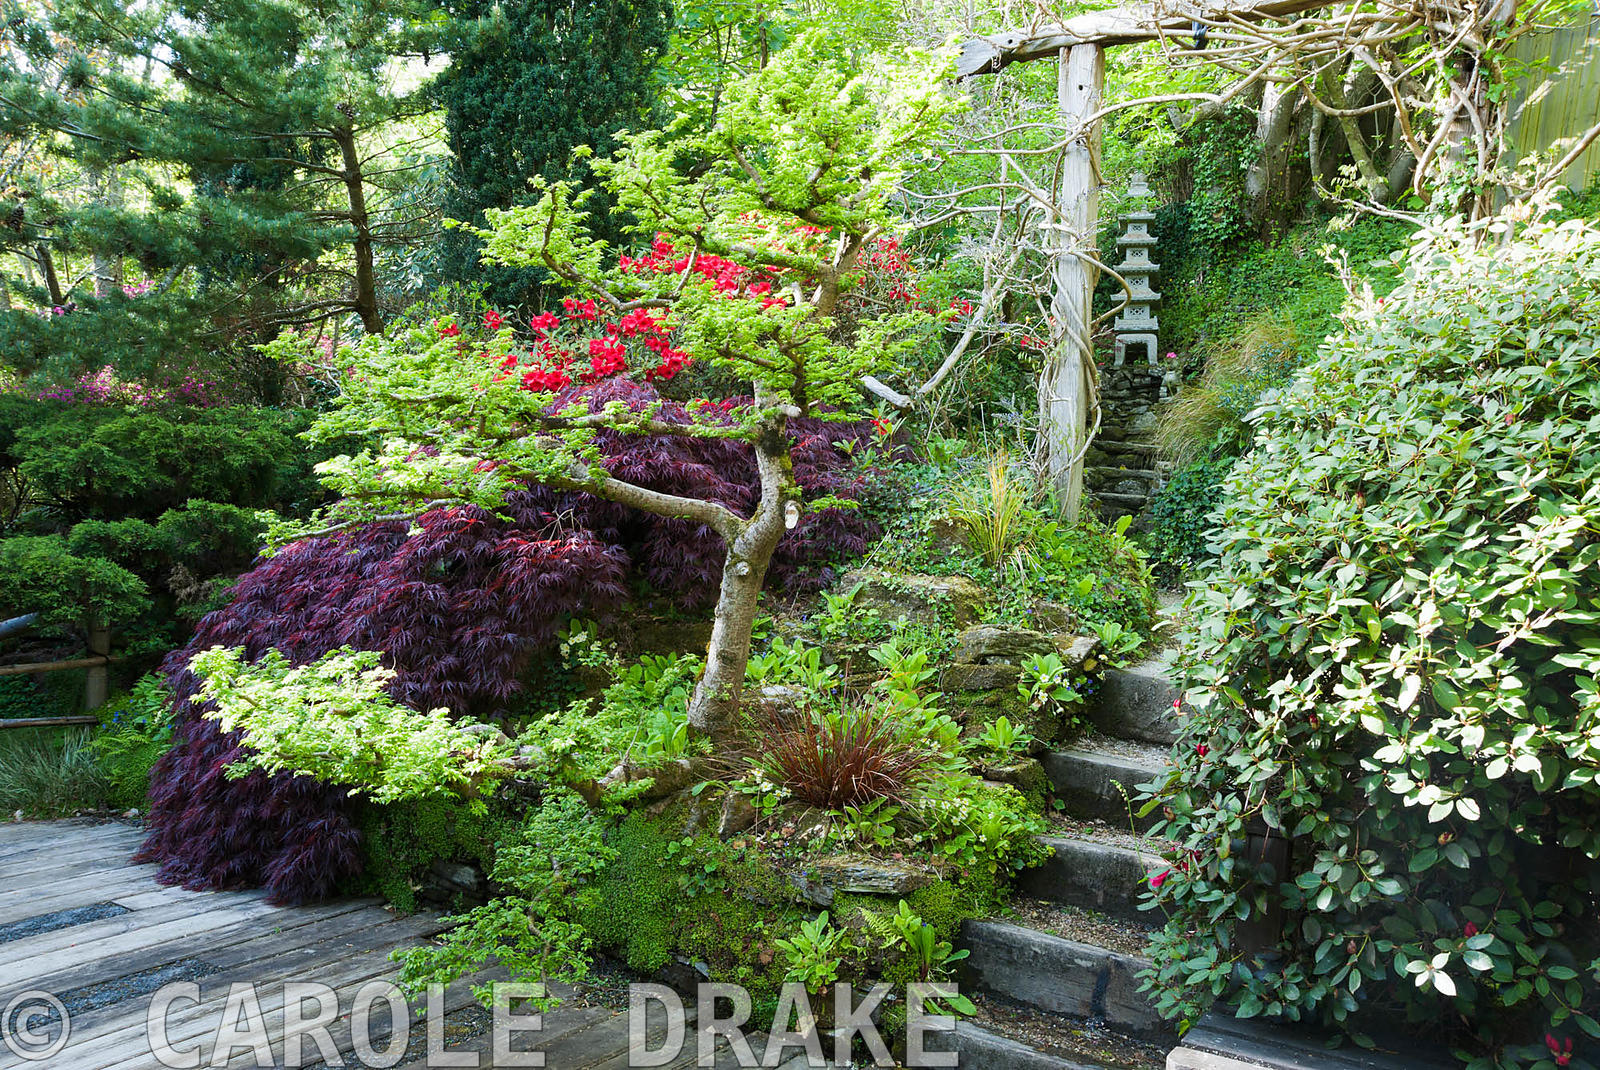 Cloud pruned elm Ulmus x hollandica 'Jacqueline Hillier' alongside dark acer and red rhododendron around decking from which s...